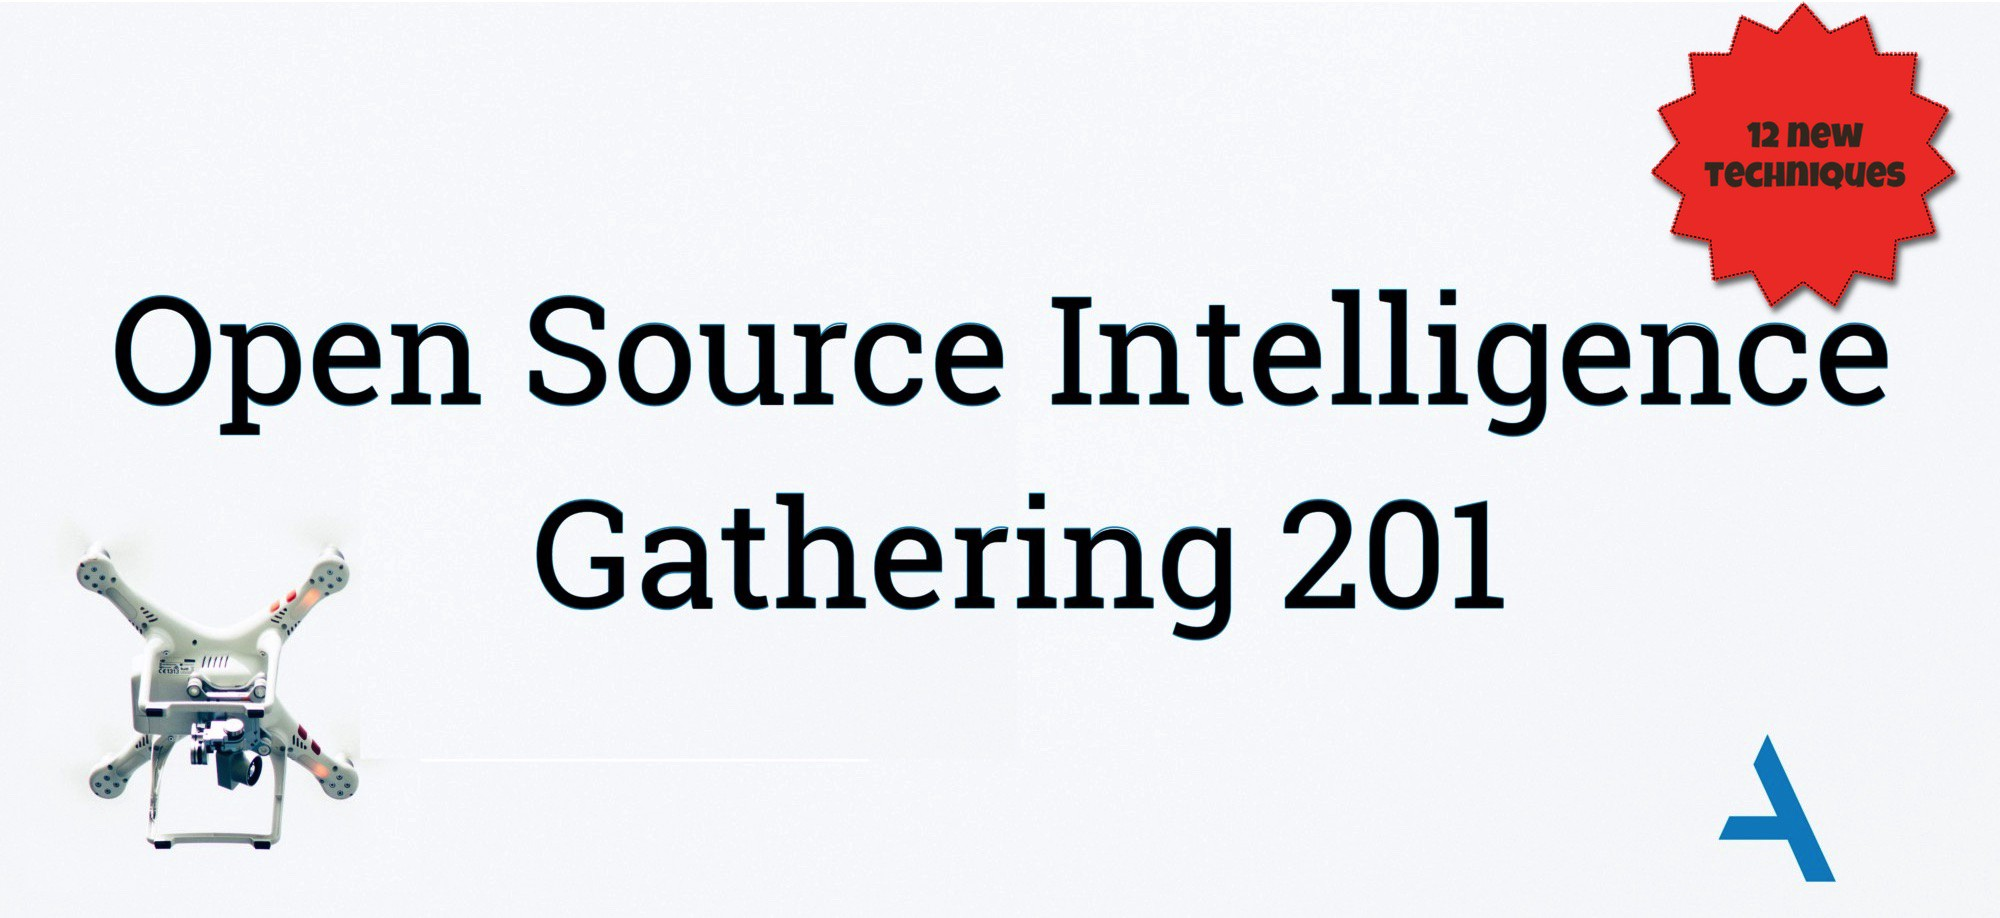 Open Source Intelligence Gathering 201 (Covering 12 additional